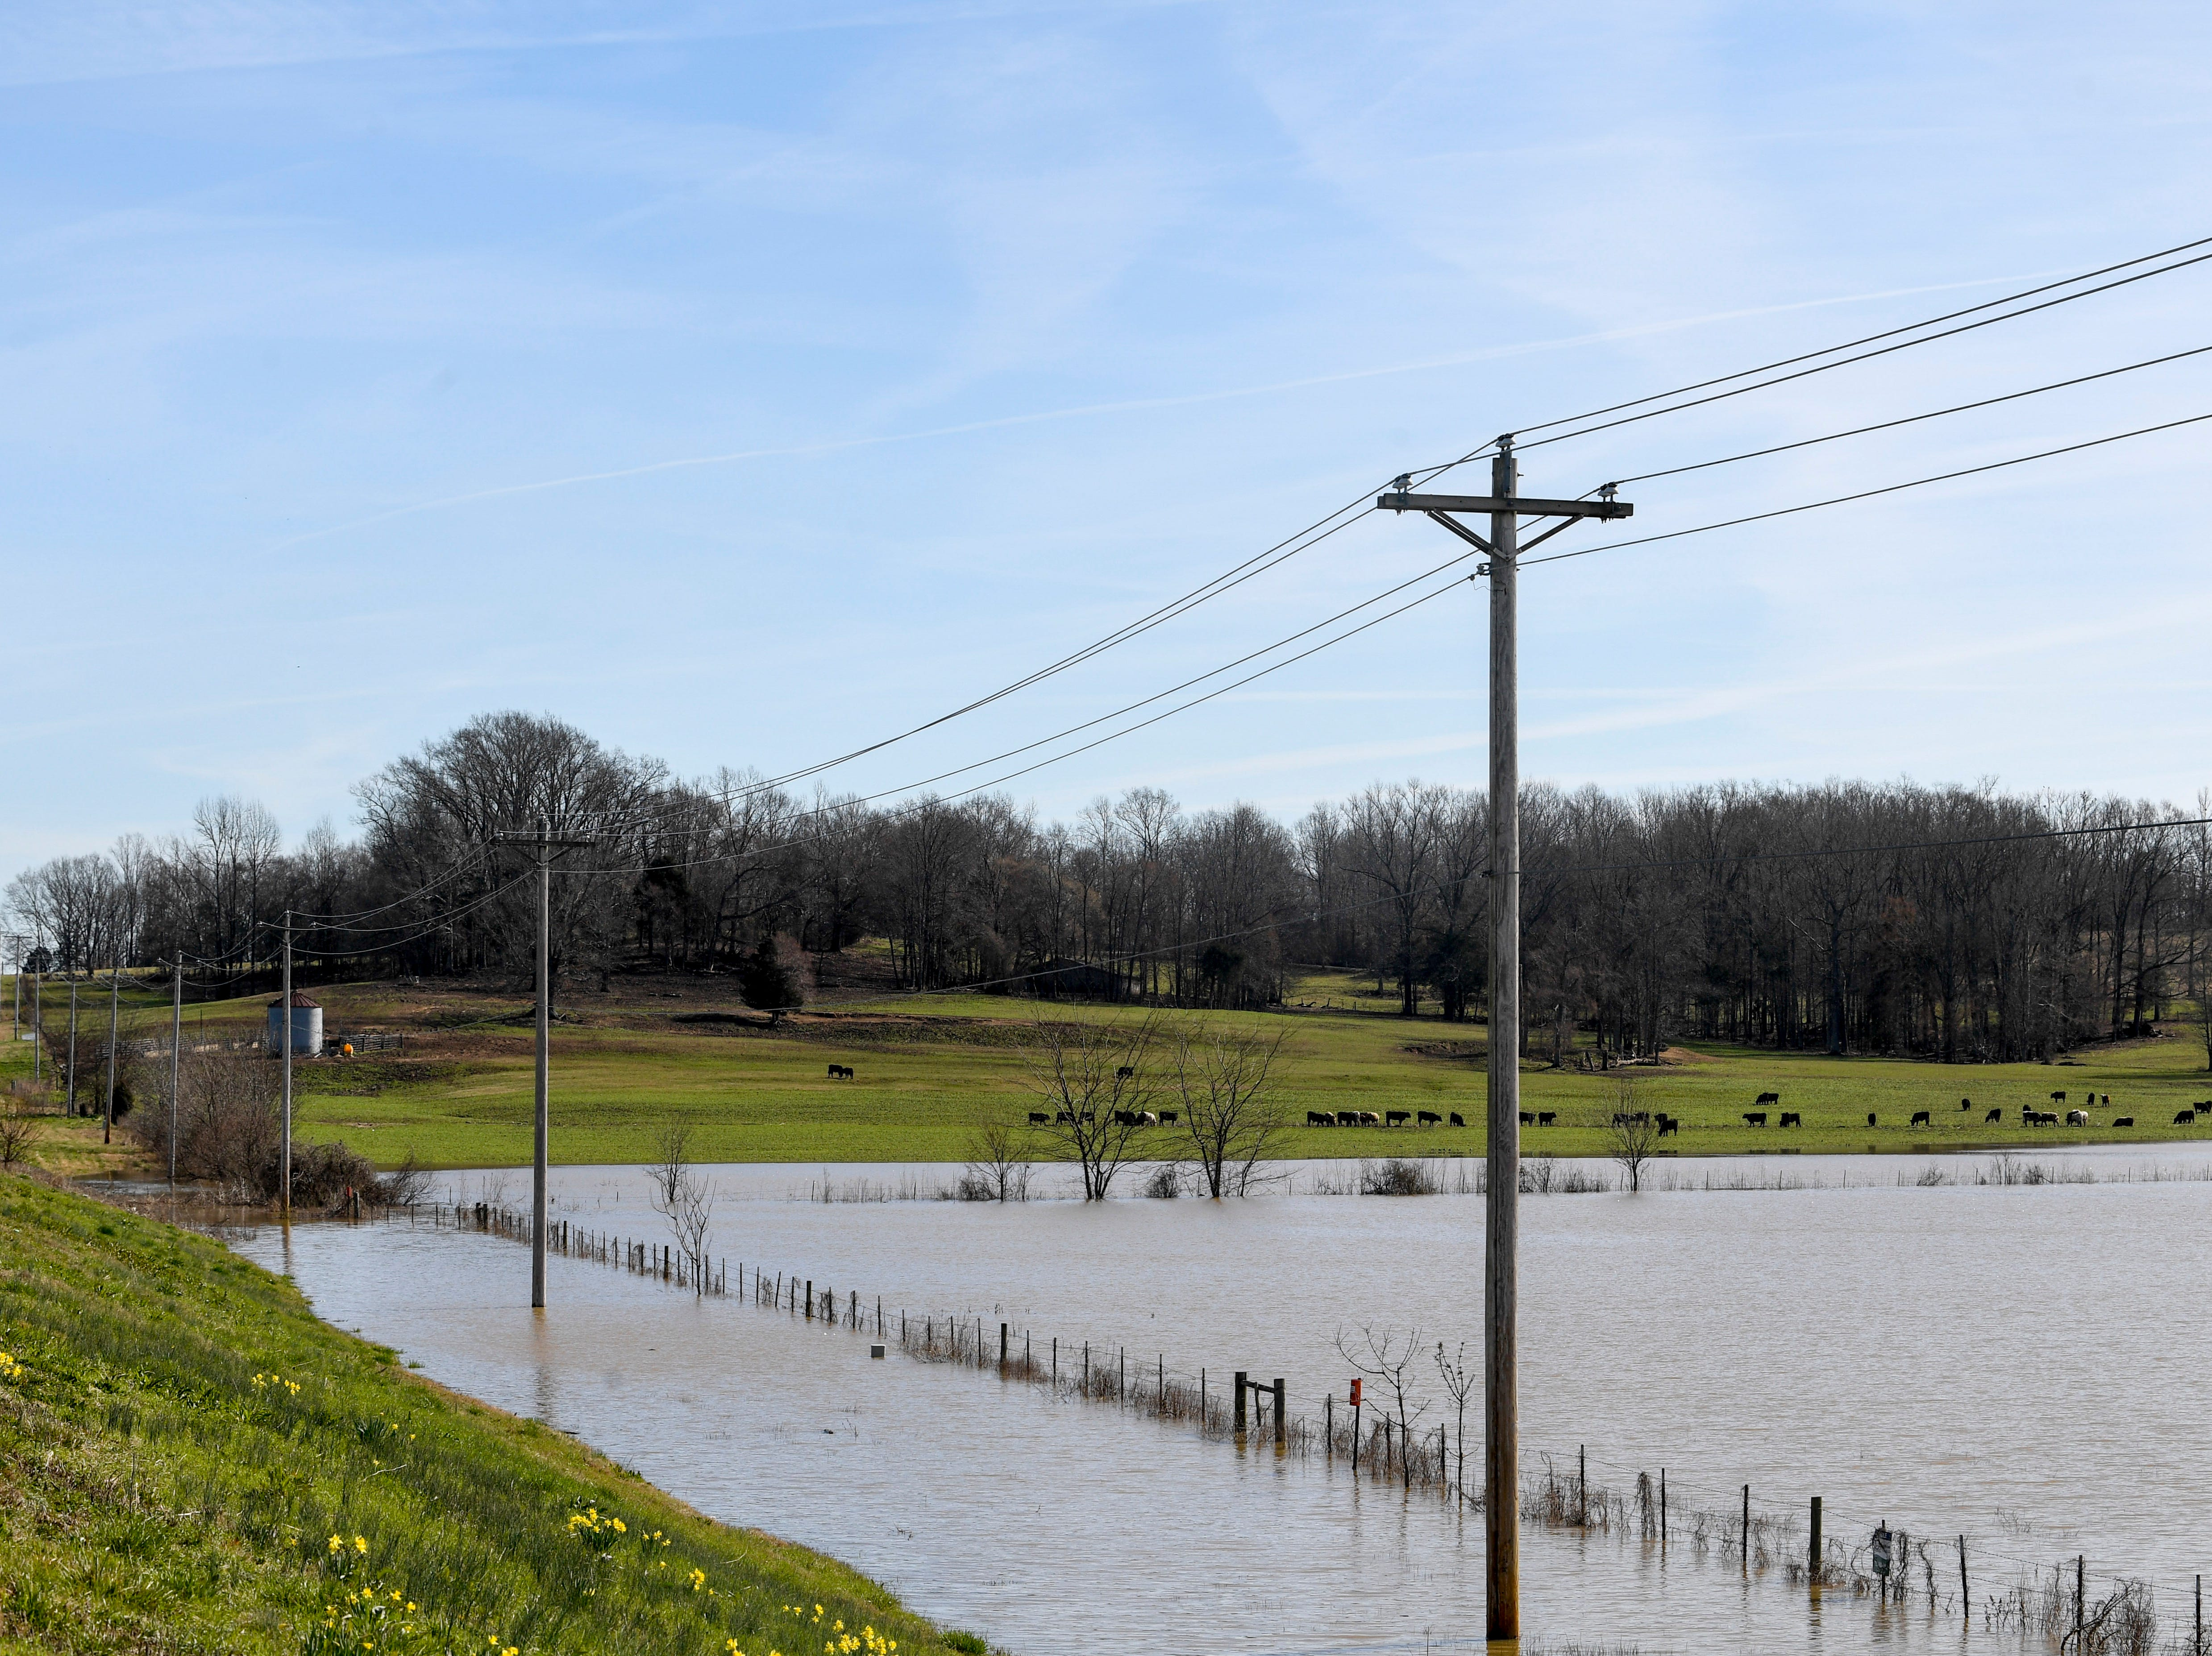 Cows can be seen grazing in fields flooded by water from an adjacent river along US 412, in Lexington, Tenn., on Monday, Feb. 25, 2019.